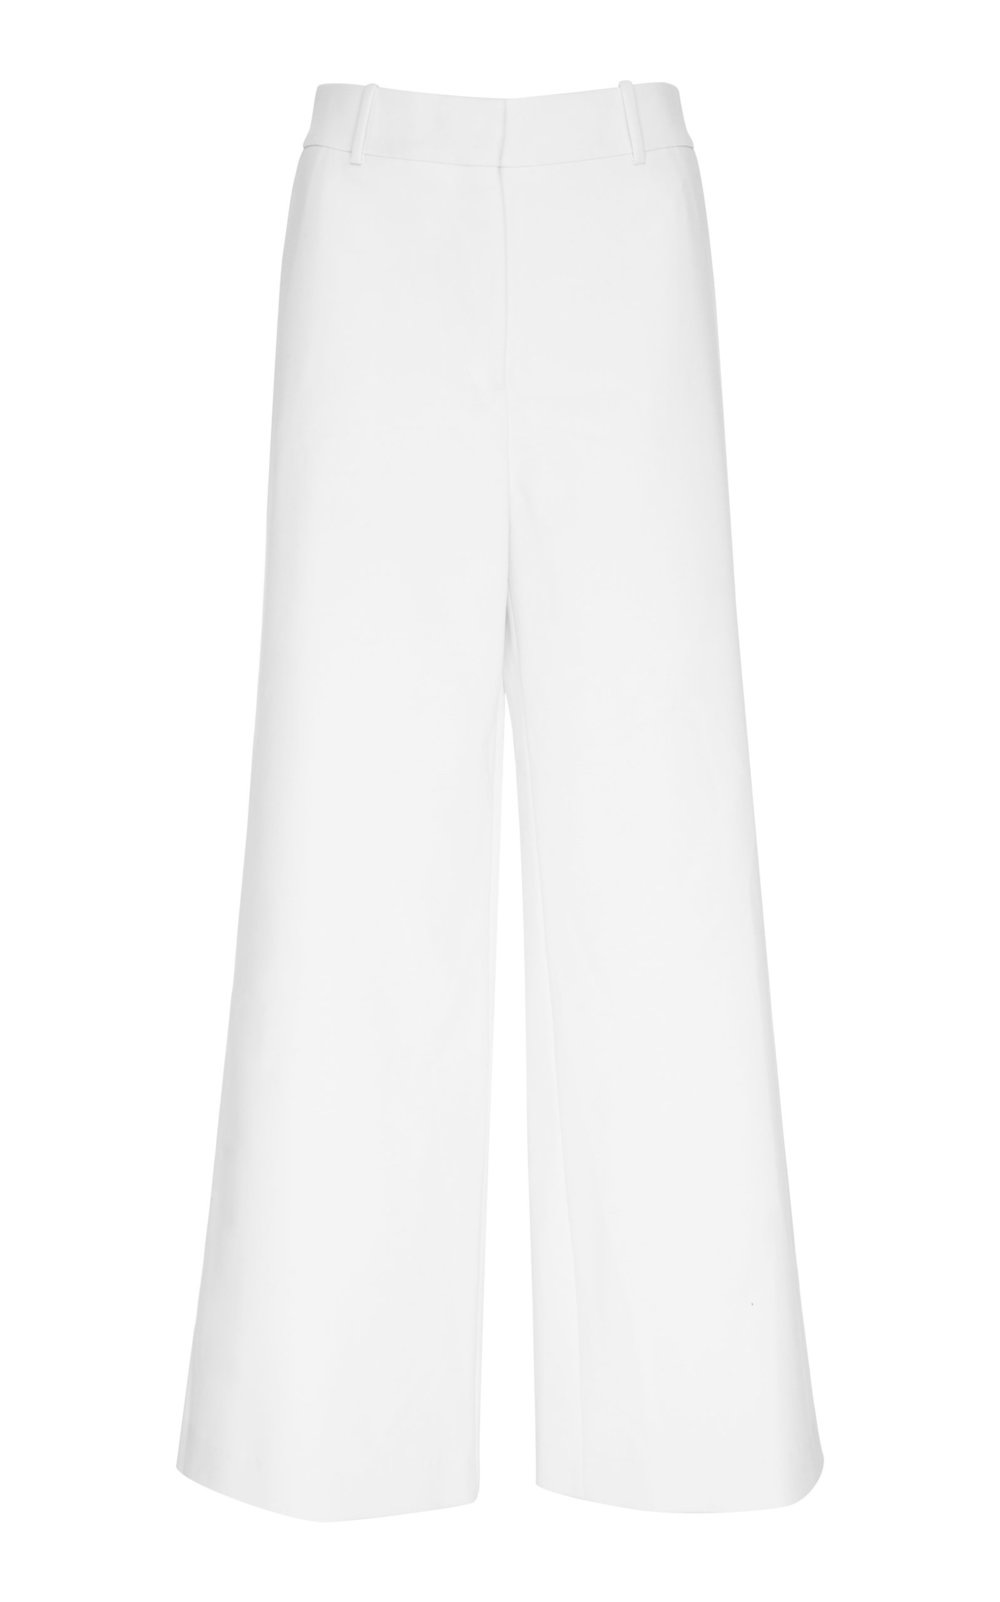 Erigeron Virgin Wool Pants - IVORY  Tailored in a wide leg silhouette and featuring high waistline, these pants are a wardrobe classic.